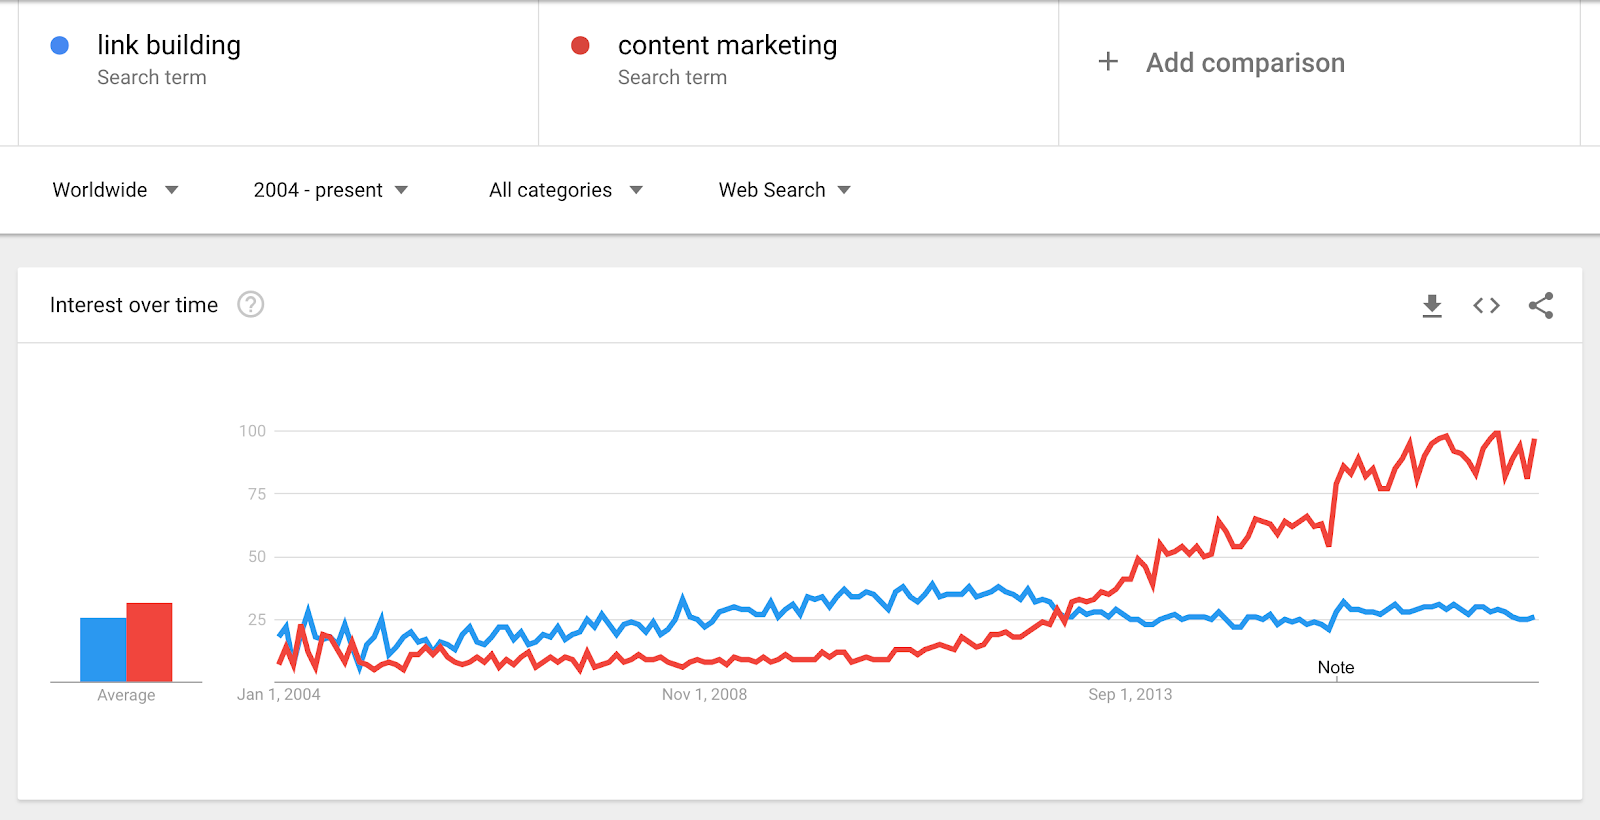 Link Building vs. Content Marketing - Google Trends